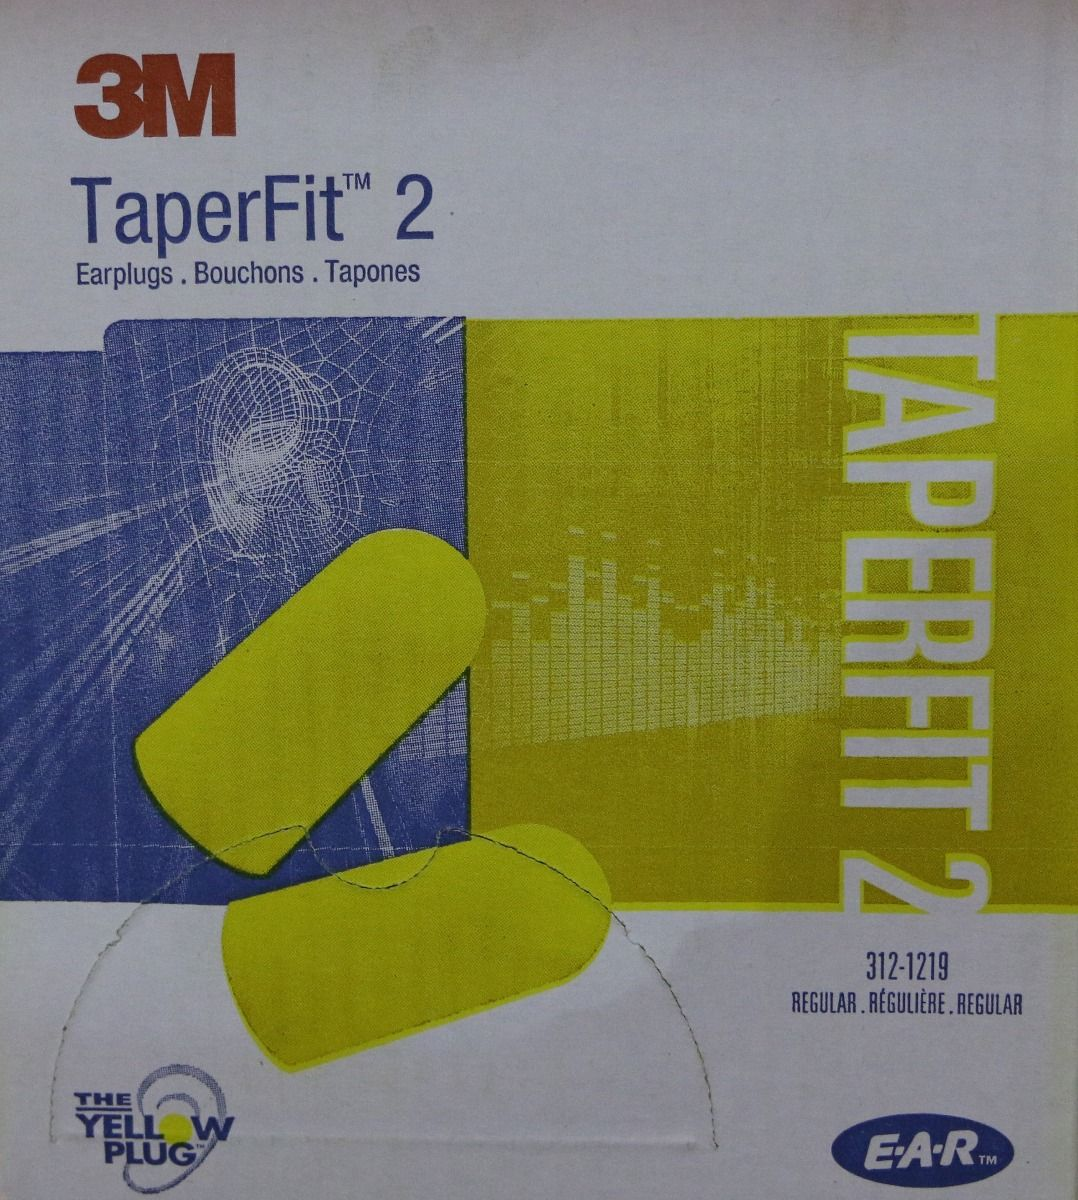 EAR PLUGS by 3M 312-1219